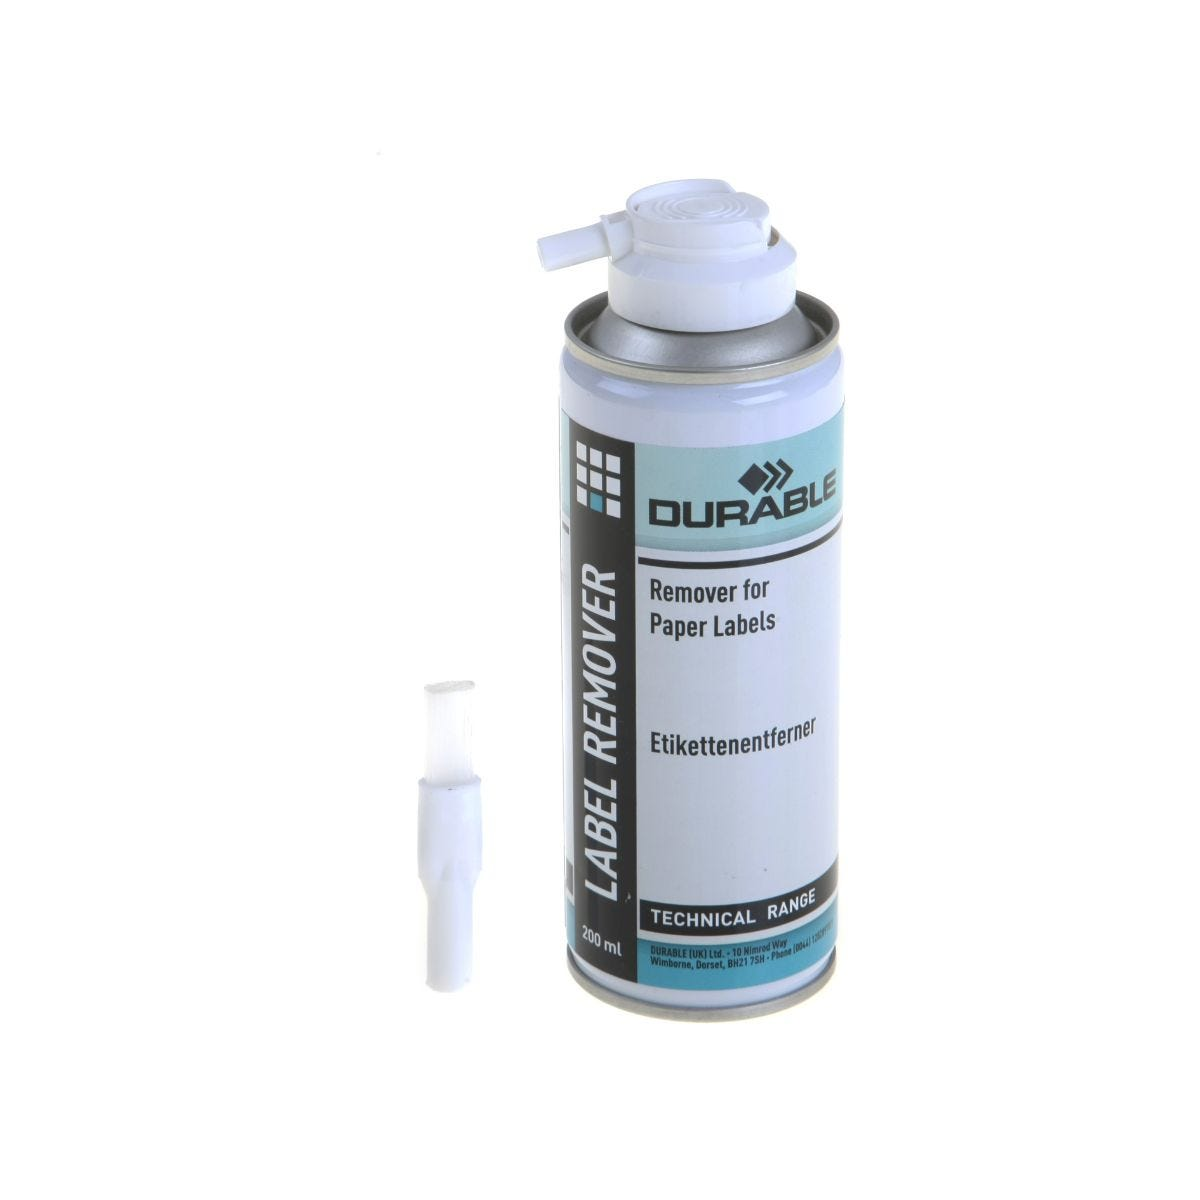 Durable Label Remover 200ml.